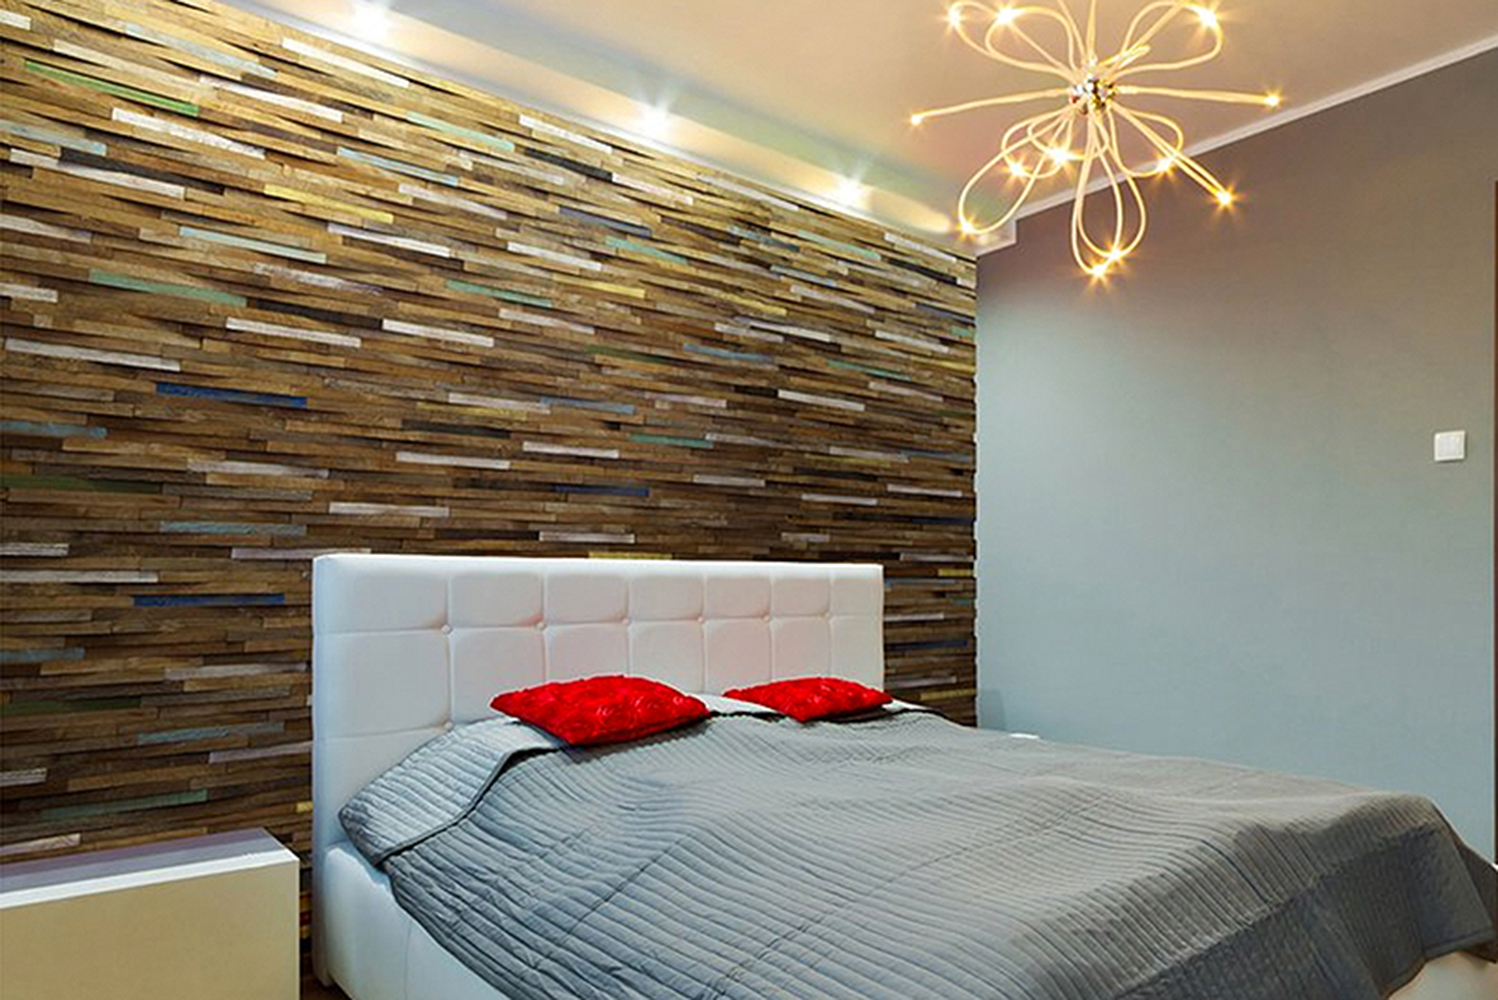 For Kayu V-wood wall cladding, the distressed teak is repurposed from timber salvaged from tropical buildings.